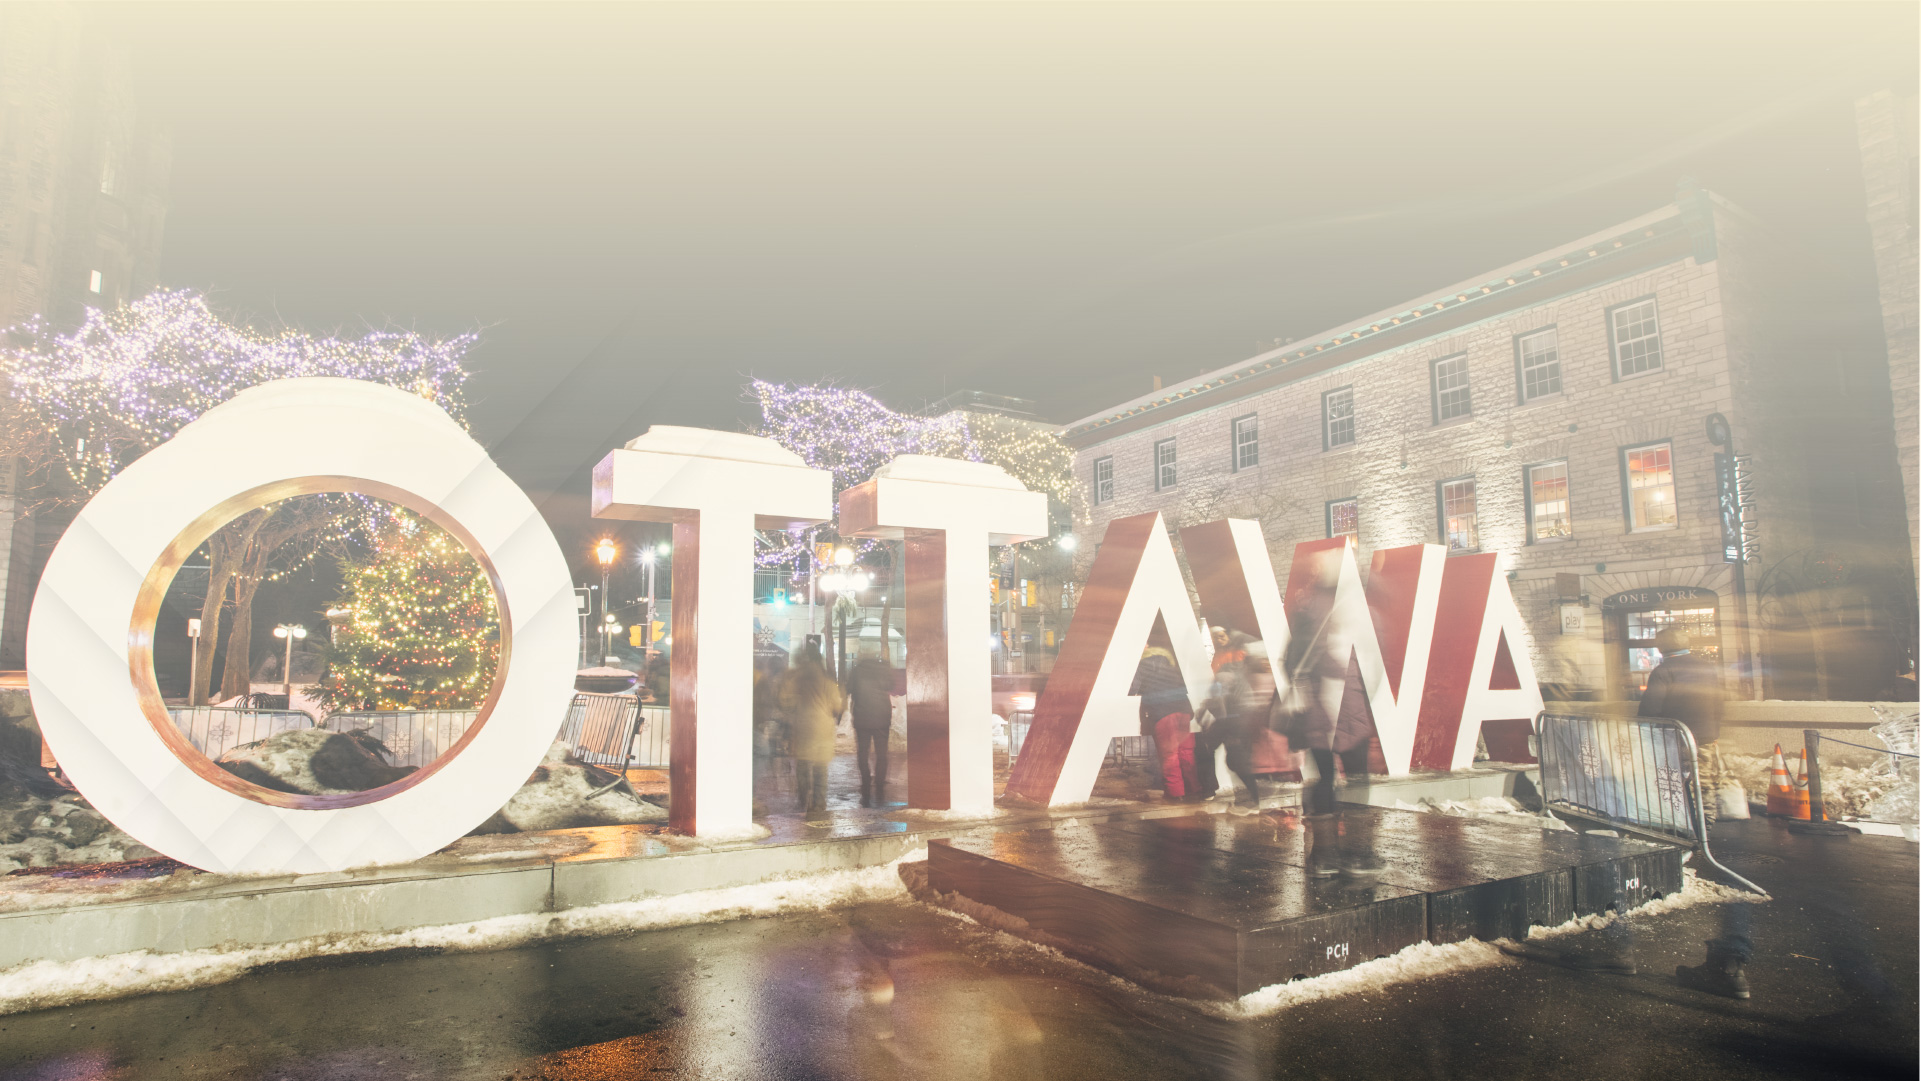 People walking around the Ottawa sign in downtown during the winter